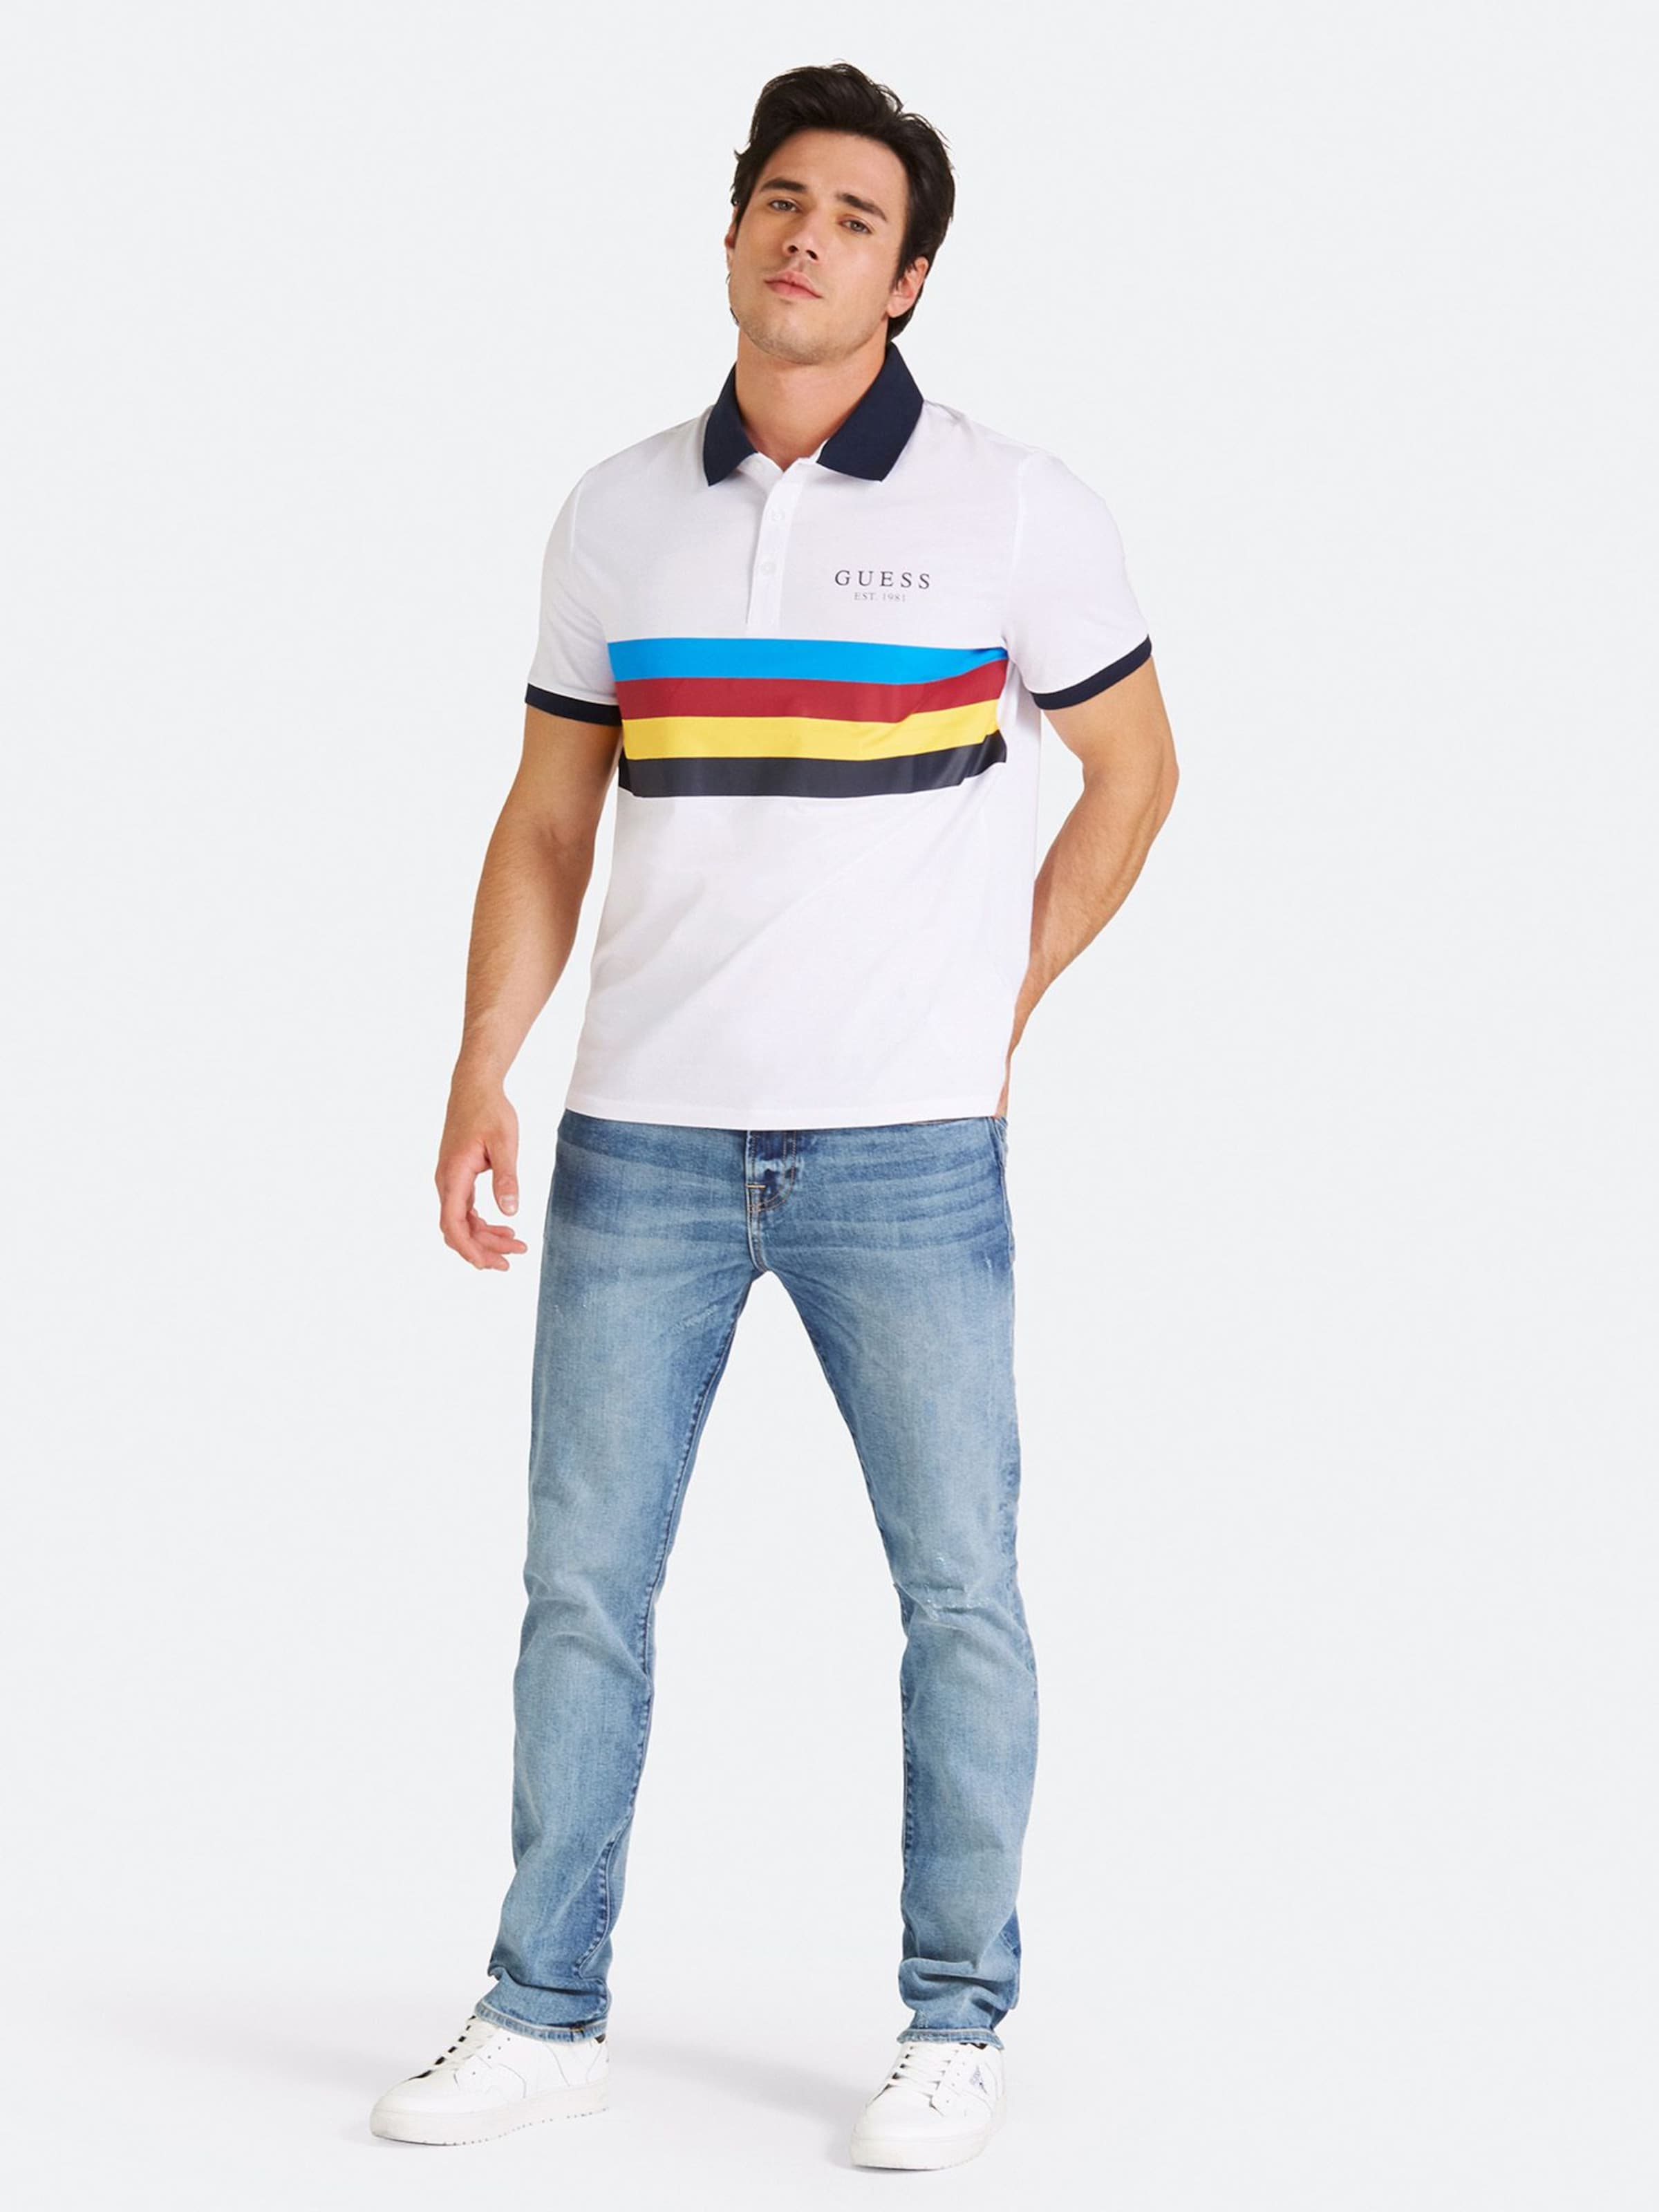 Weiß Poloshirt In Print Mit Color Guess Block BlauGelb Rot OP08nwkXNZ